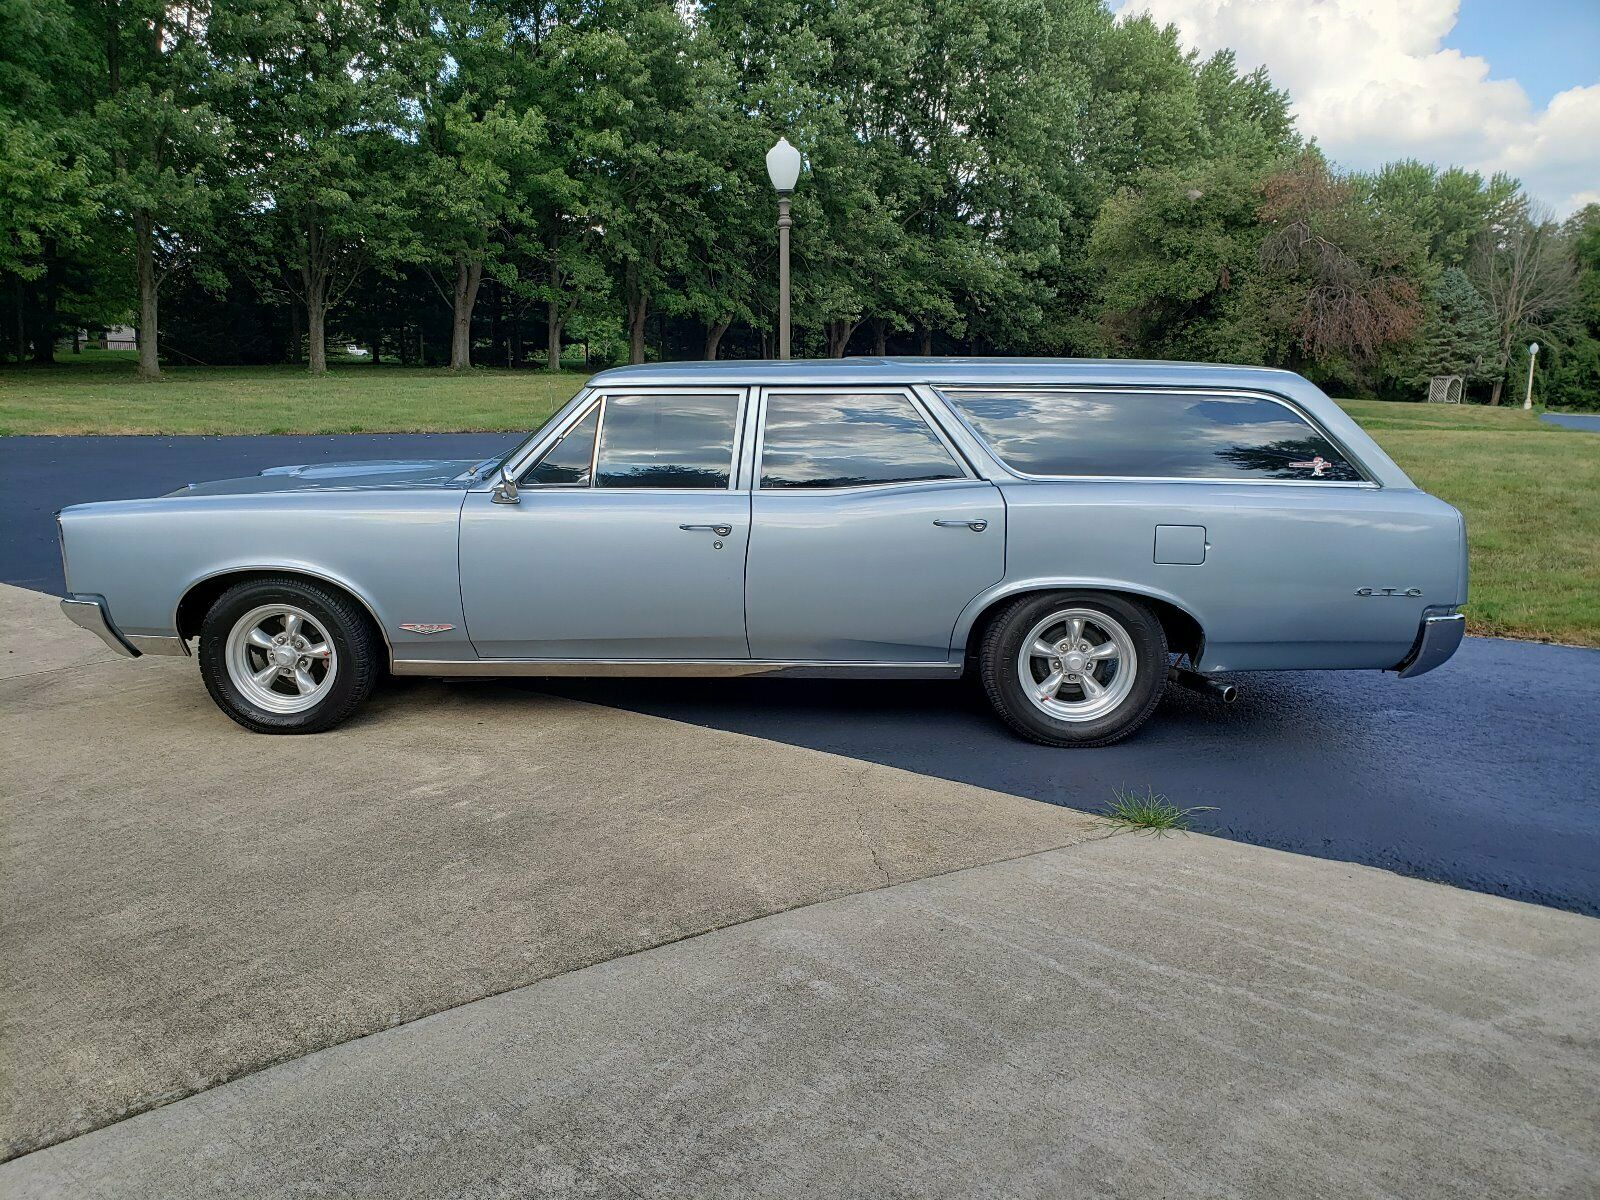 eBay: This 1967 Pontiac LeMans Station Wagon Is A Well-Cubed Cruiser